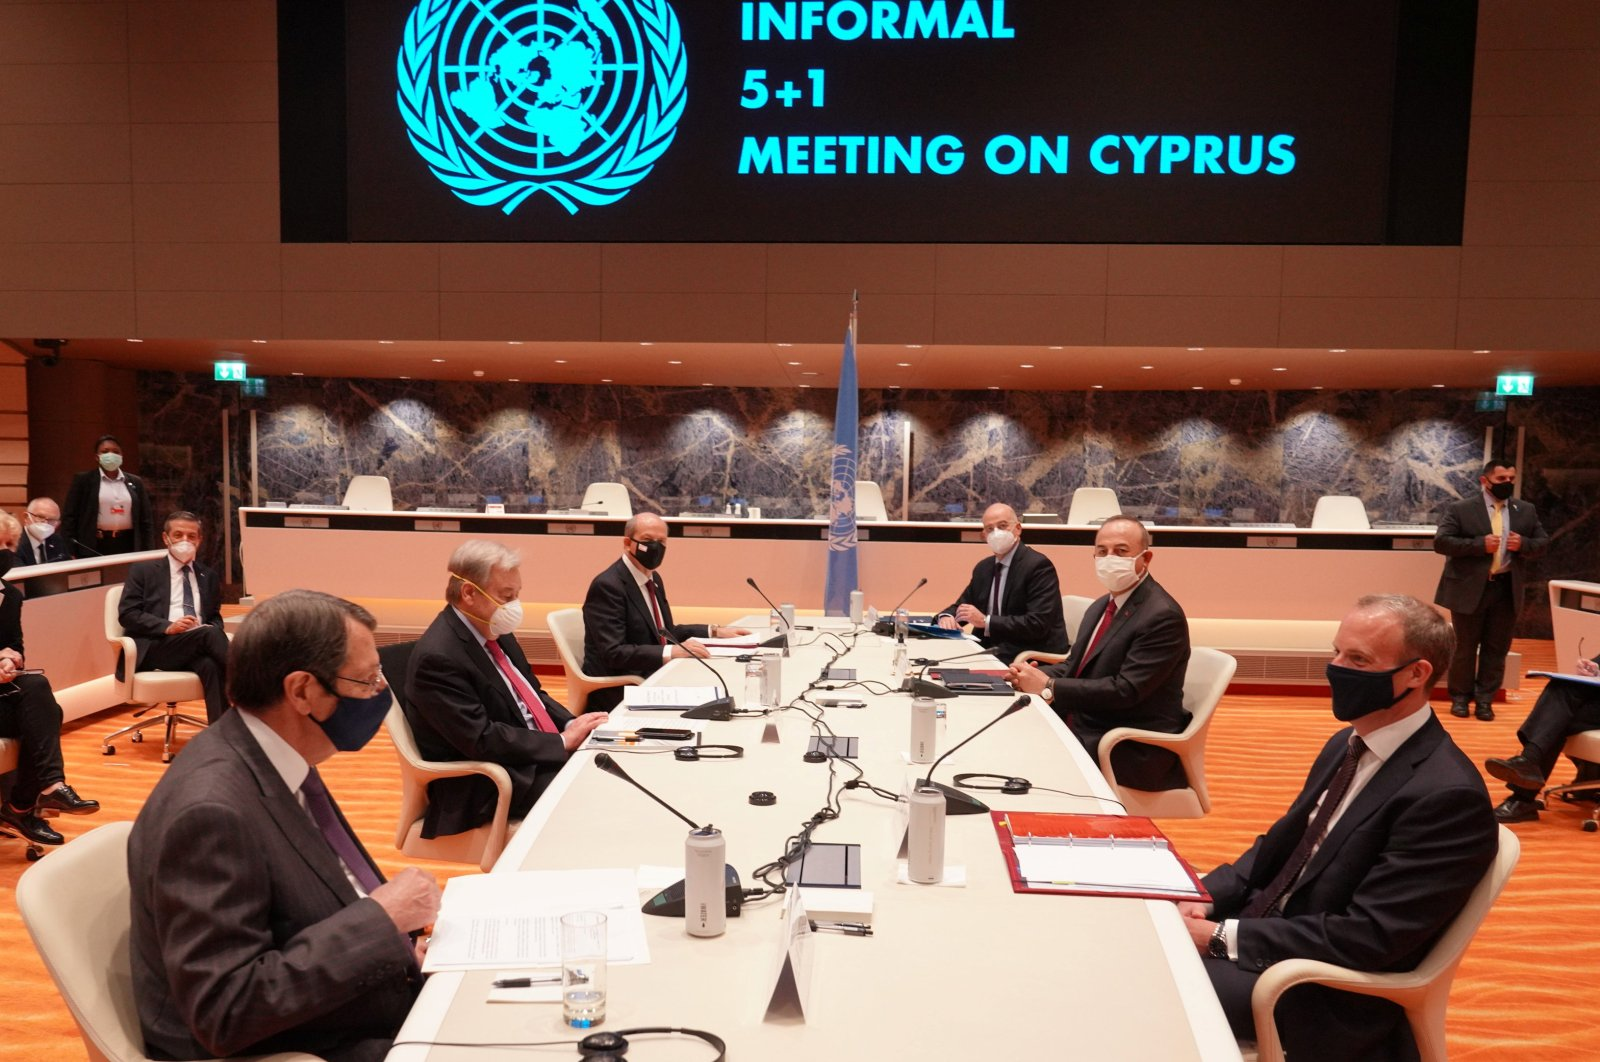 (L side, L to R) United Nations Secretary-General Antonio Guterres, Greek Cypriot leader Nicos Anastasiades and Turkish Cypriot President Ersin Tatar. (R side, L to R) Greek Foreign Minister Nikos Dendias, Turkish Foreign Minister Mevlüt Çavuşoğlu and British Foreign Secretary Dominic Raab talk during a meeting at the United Nations European headquarters in Geneva, Switzerland April 28, 2021. (PIO/Handout via Reuters)